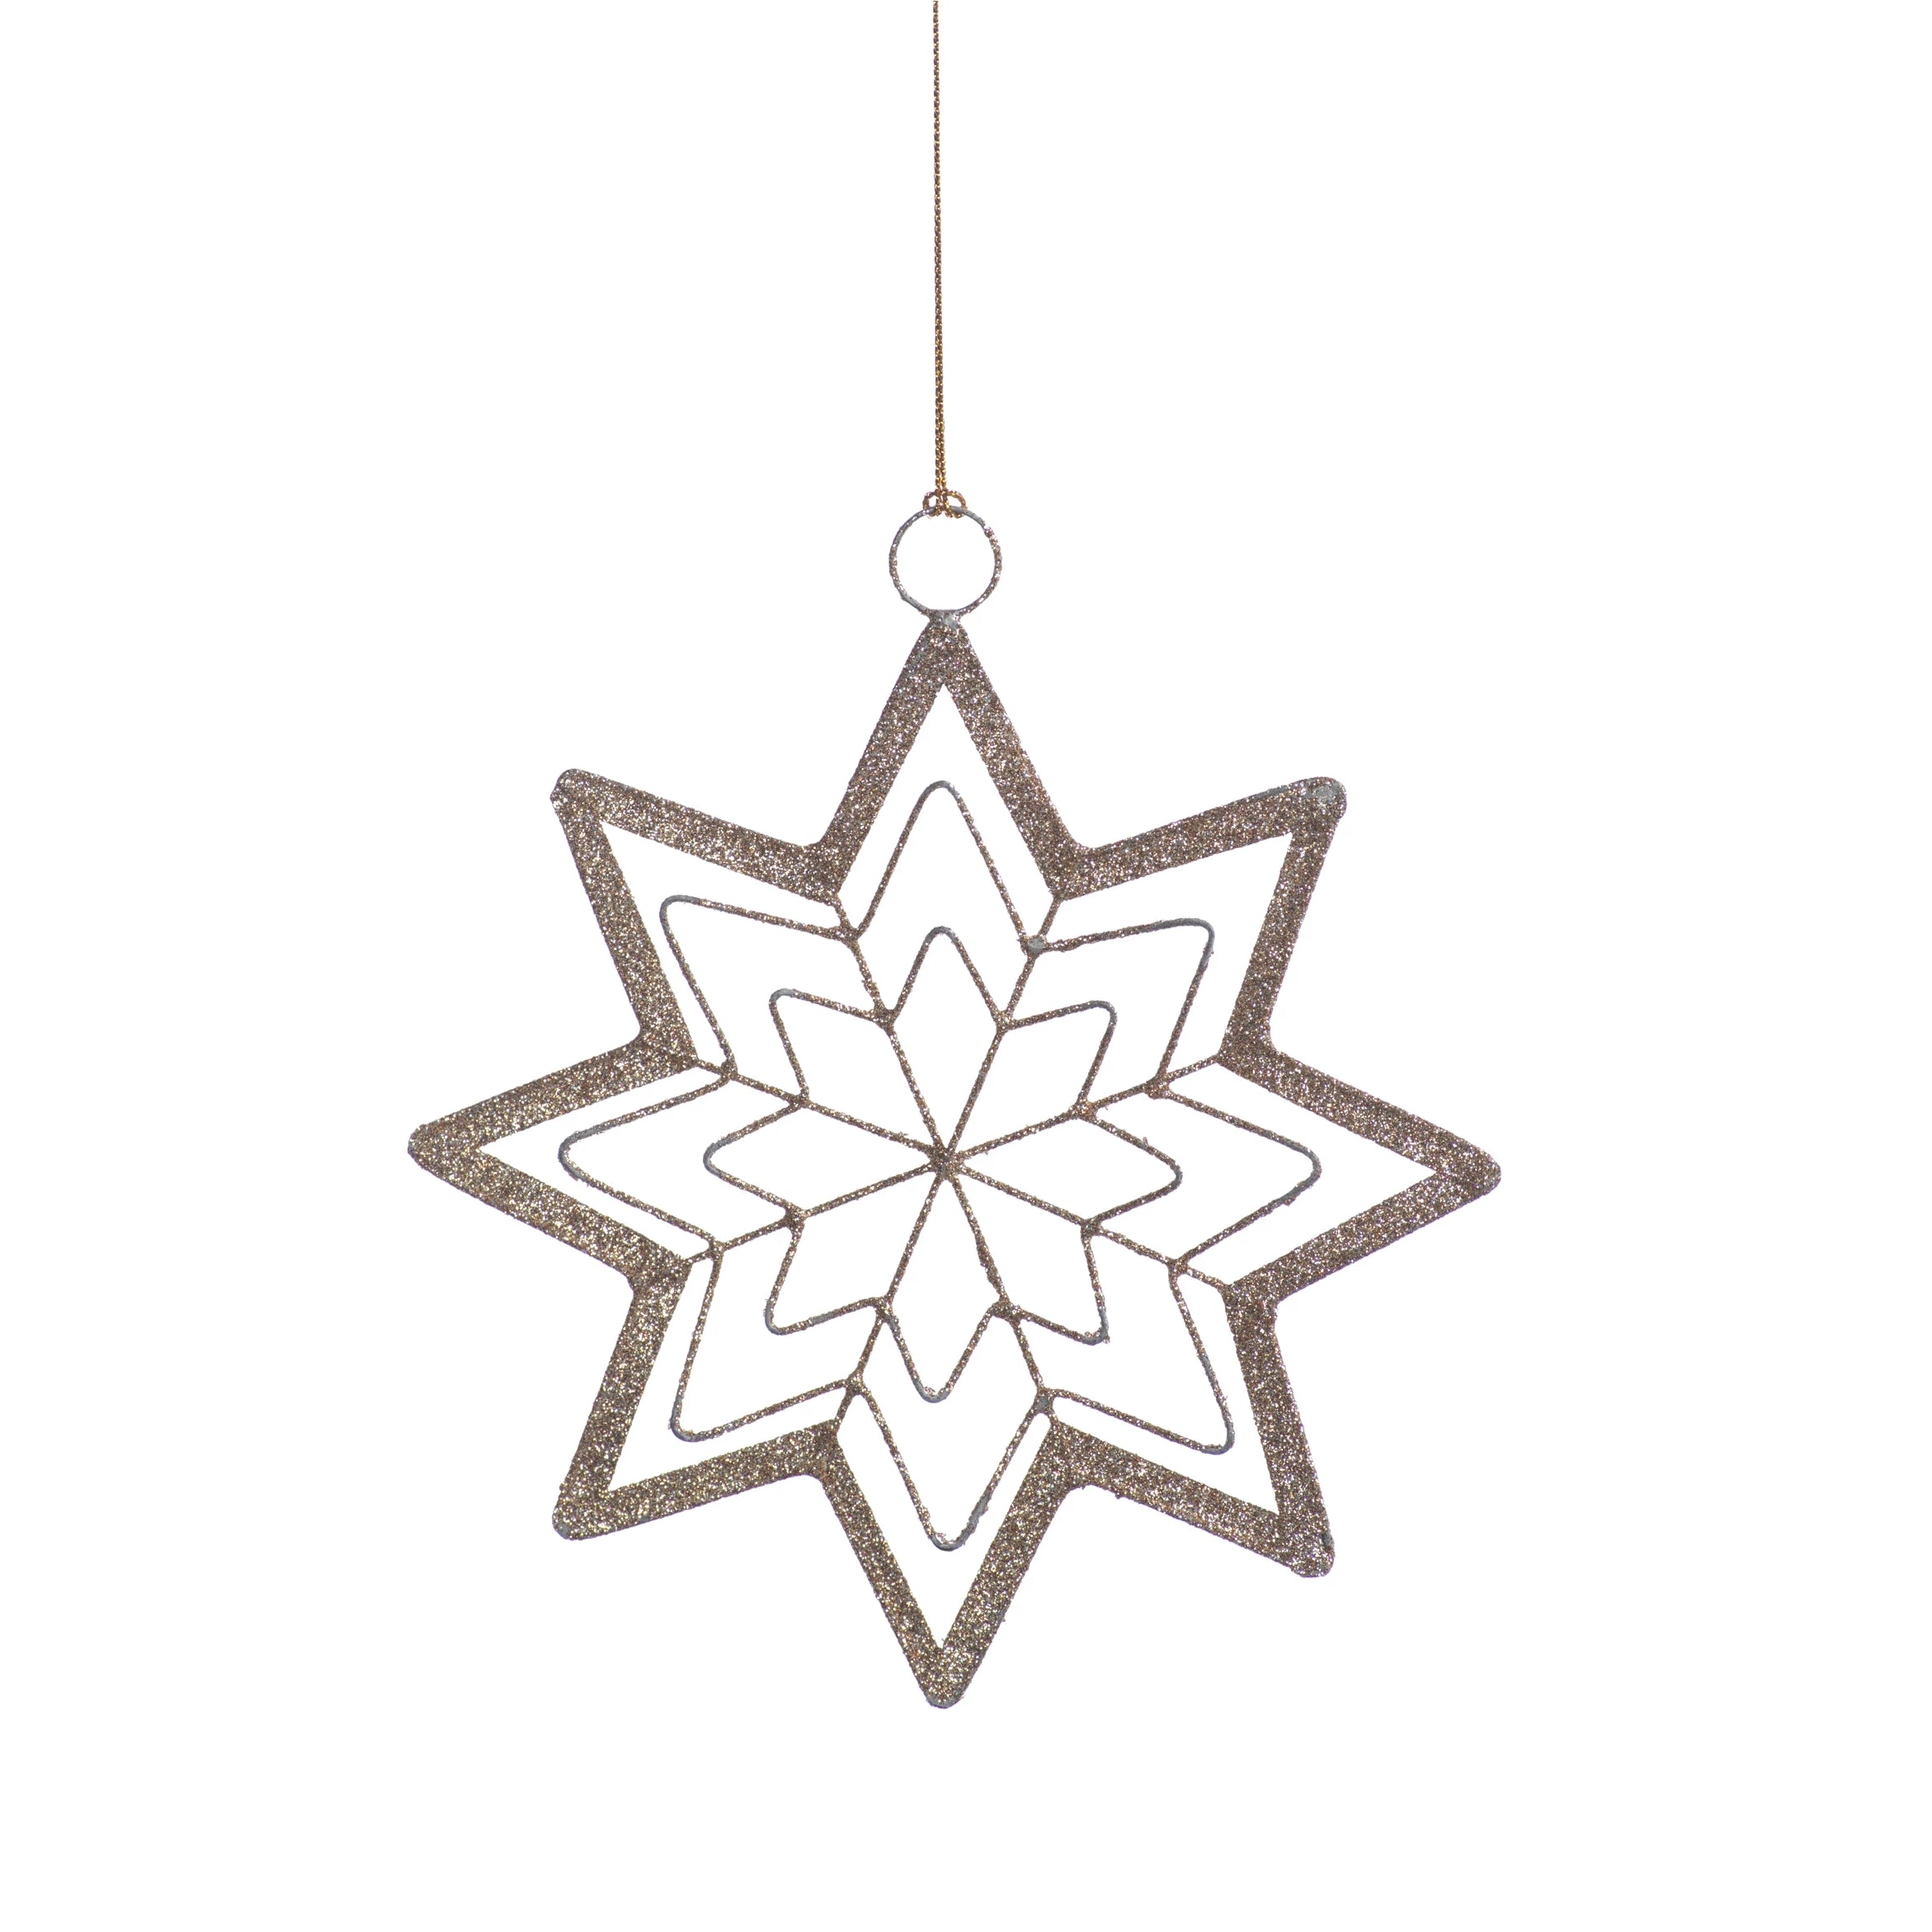 8-Point Star Ornament - 5 Colors - CARLYLE AVENUE